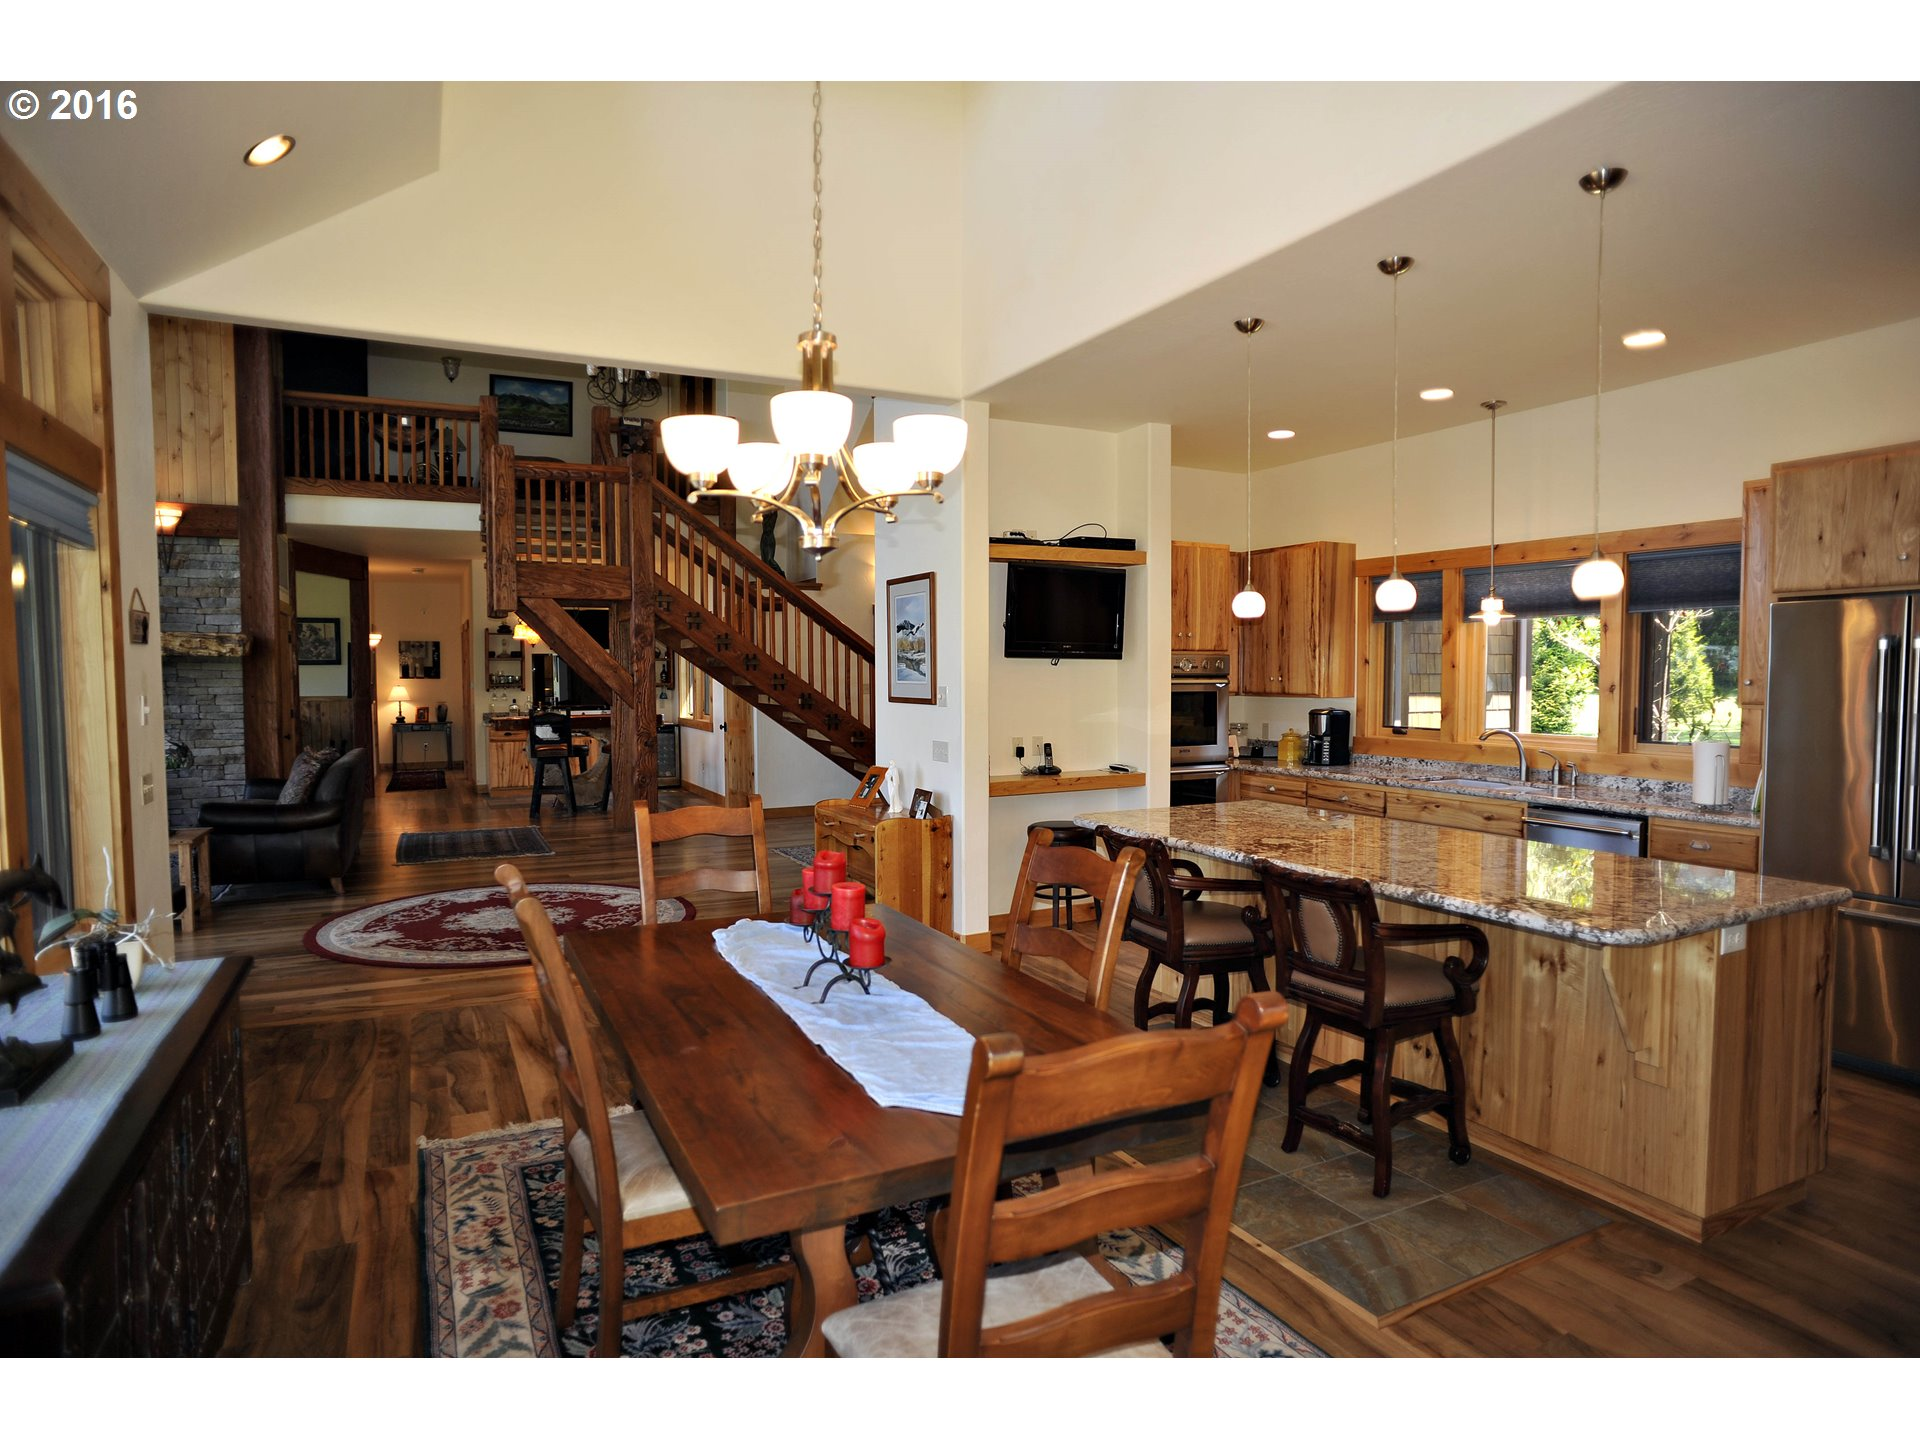 4564 sq. ft 4 bedrooms 3 bathrooms  House For Sale,Gold Beach, OR